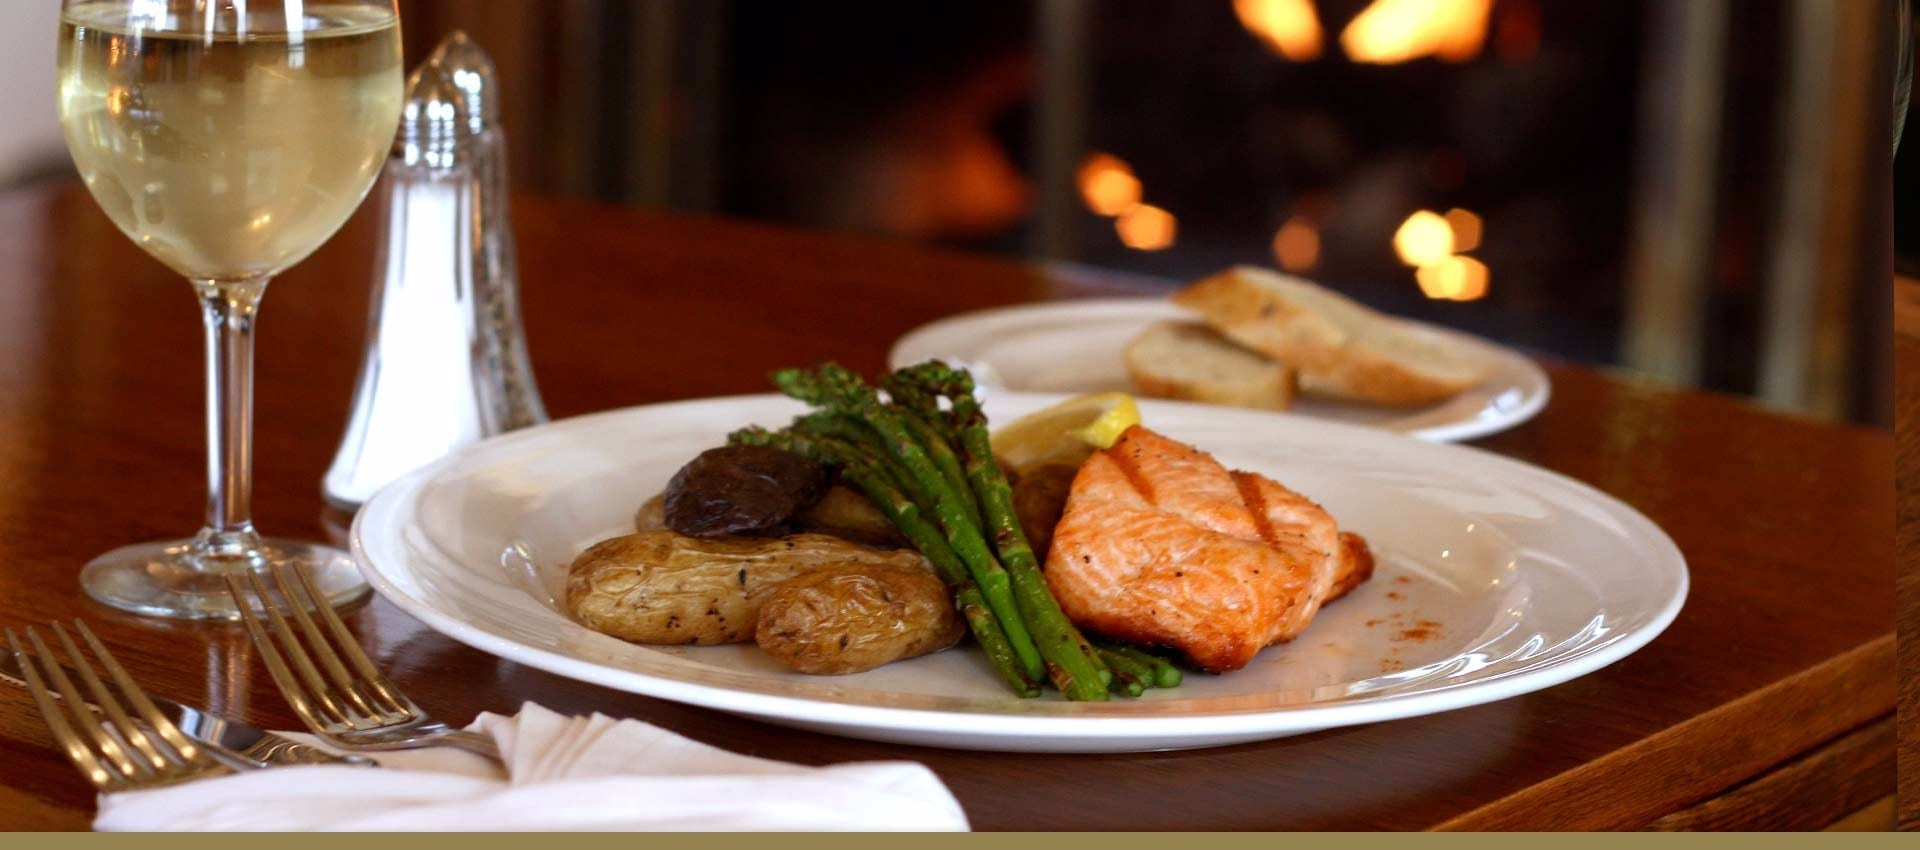 Fine Dining Salmon plate at Victorian Village Inn Restruarant